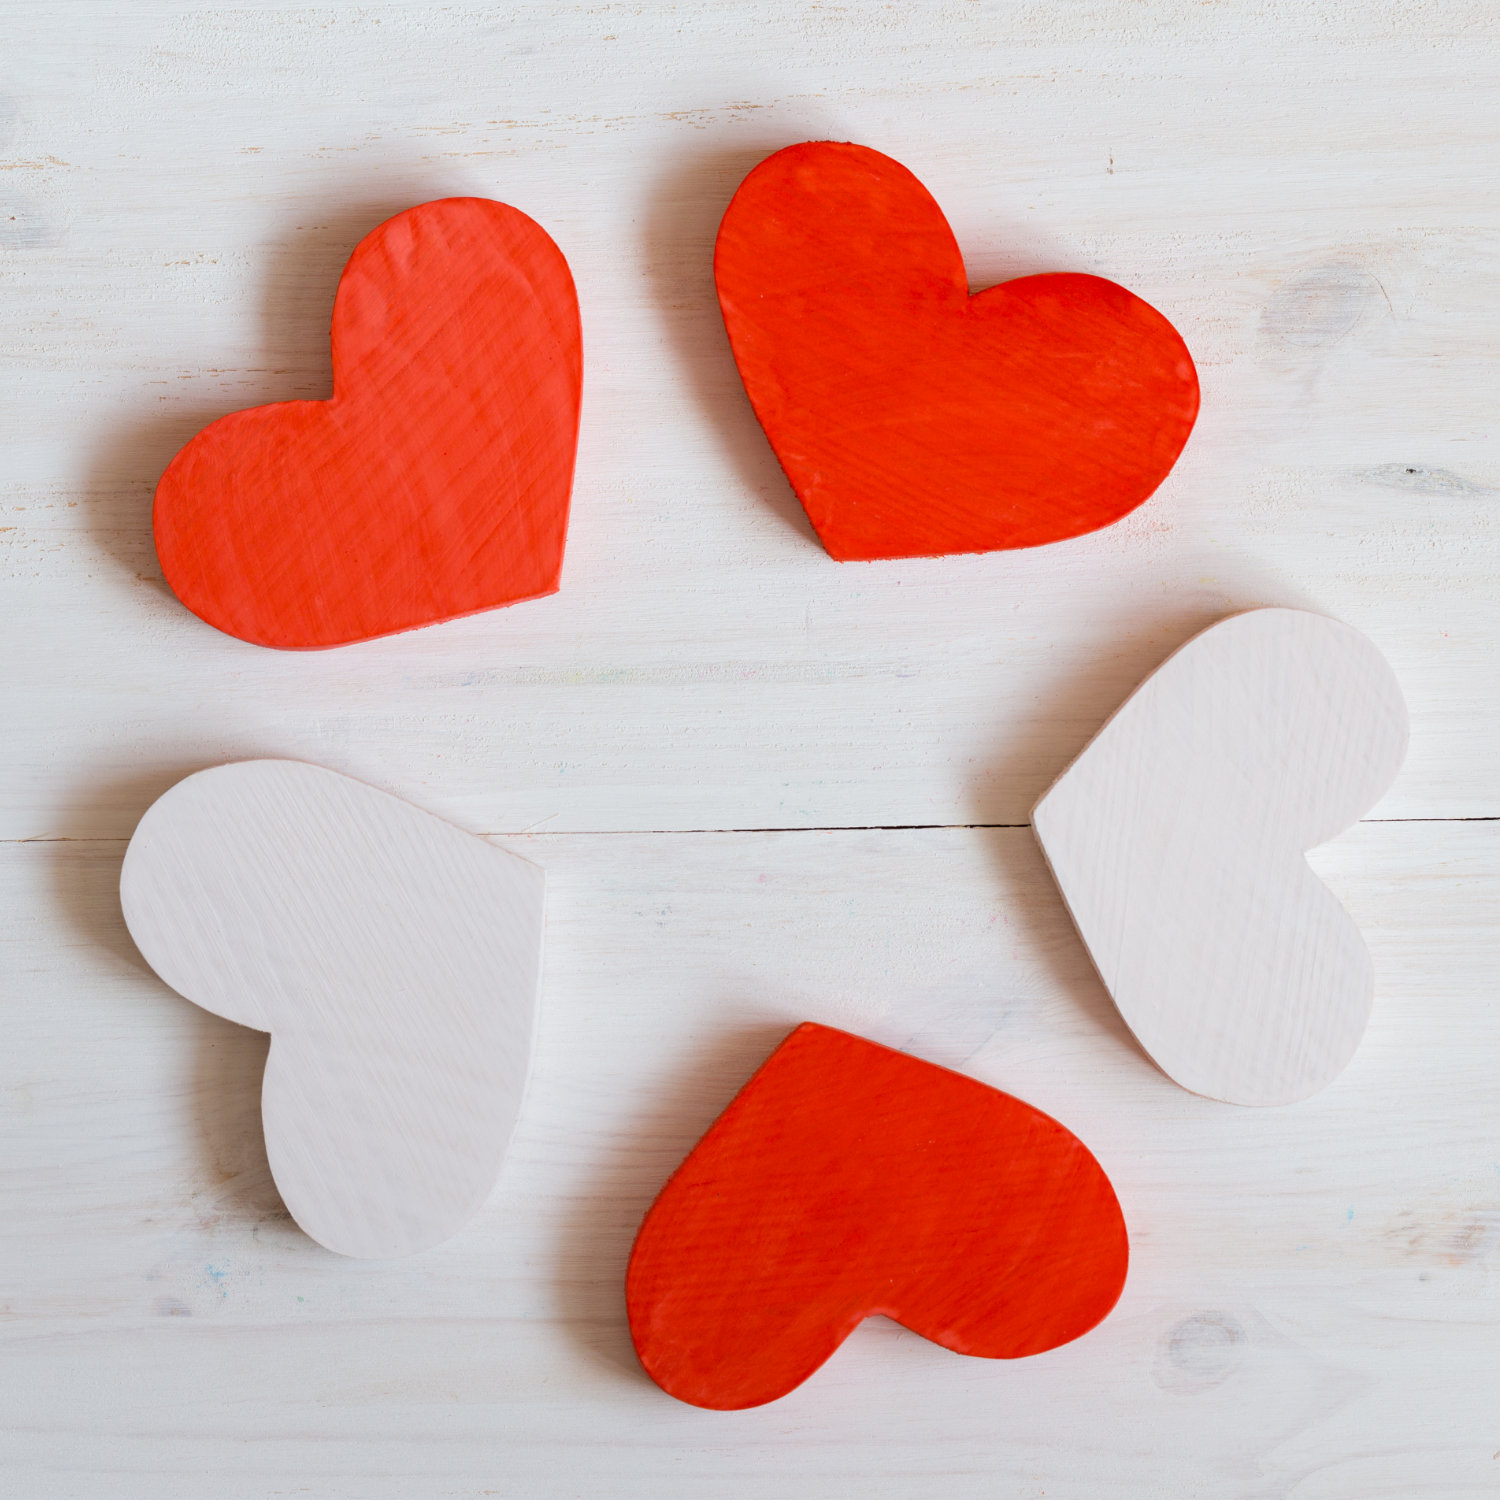 red-and-white-hearts-on-white-wooden-background-PZS9JZN.jpg